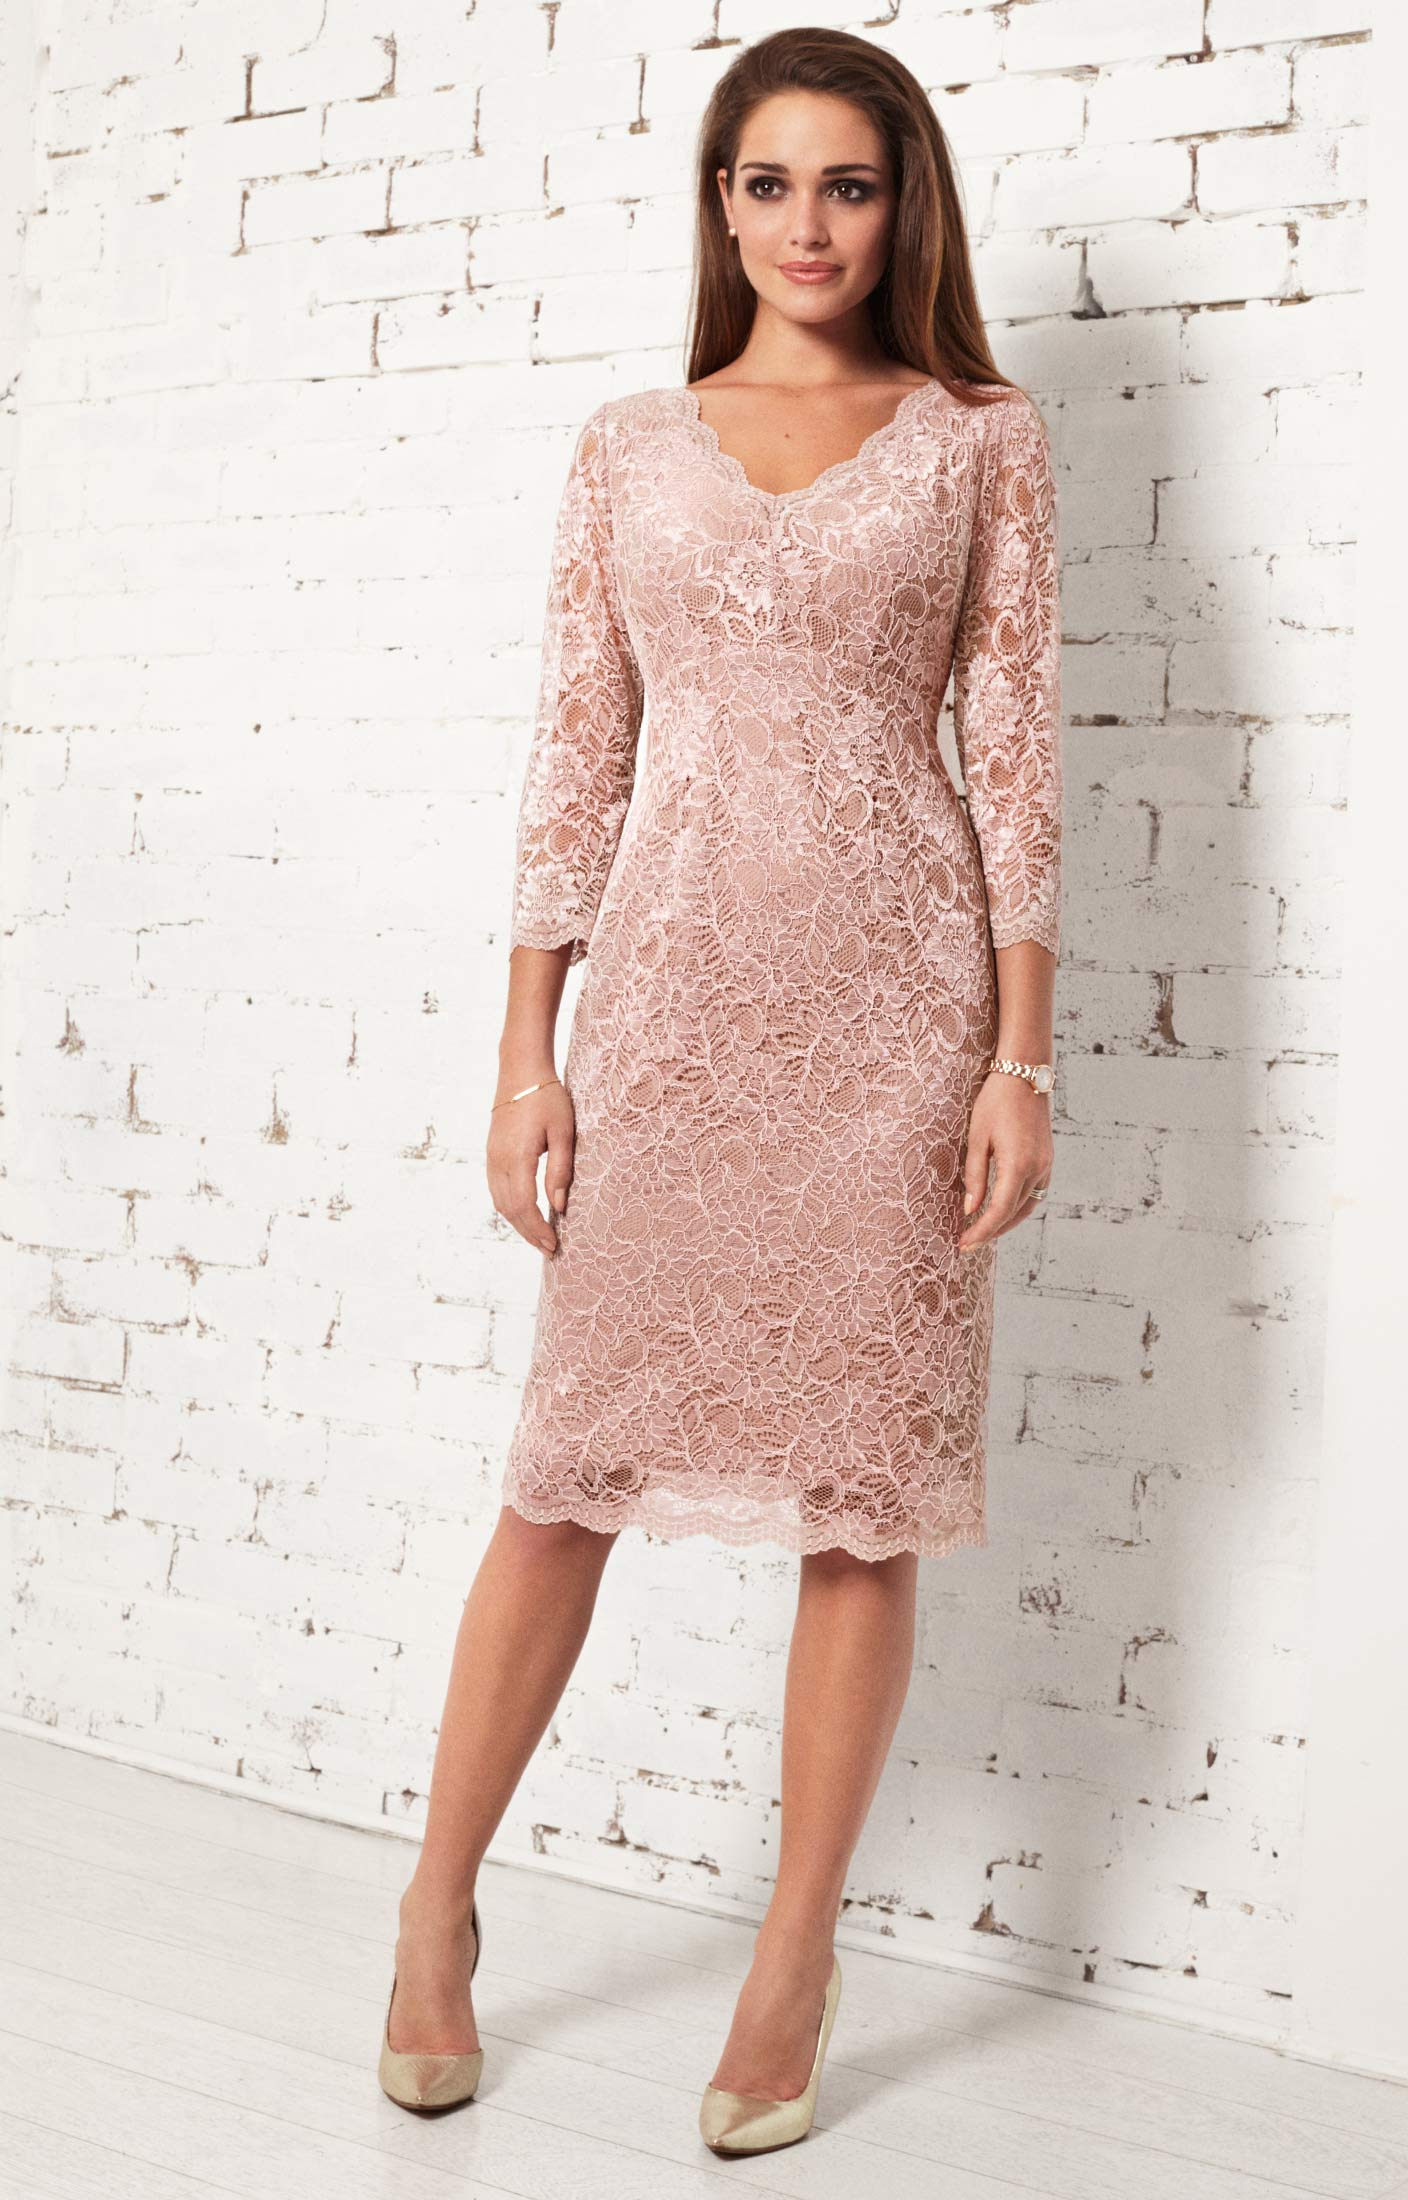 Anya lace occasion dress blush evening dresses for Cocktail dresses to wear to a wedding